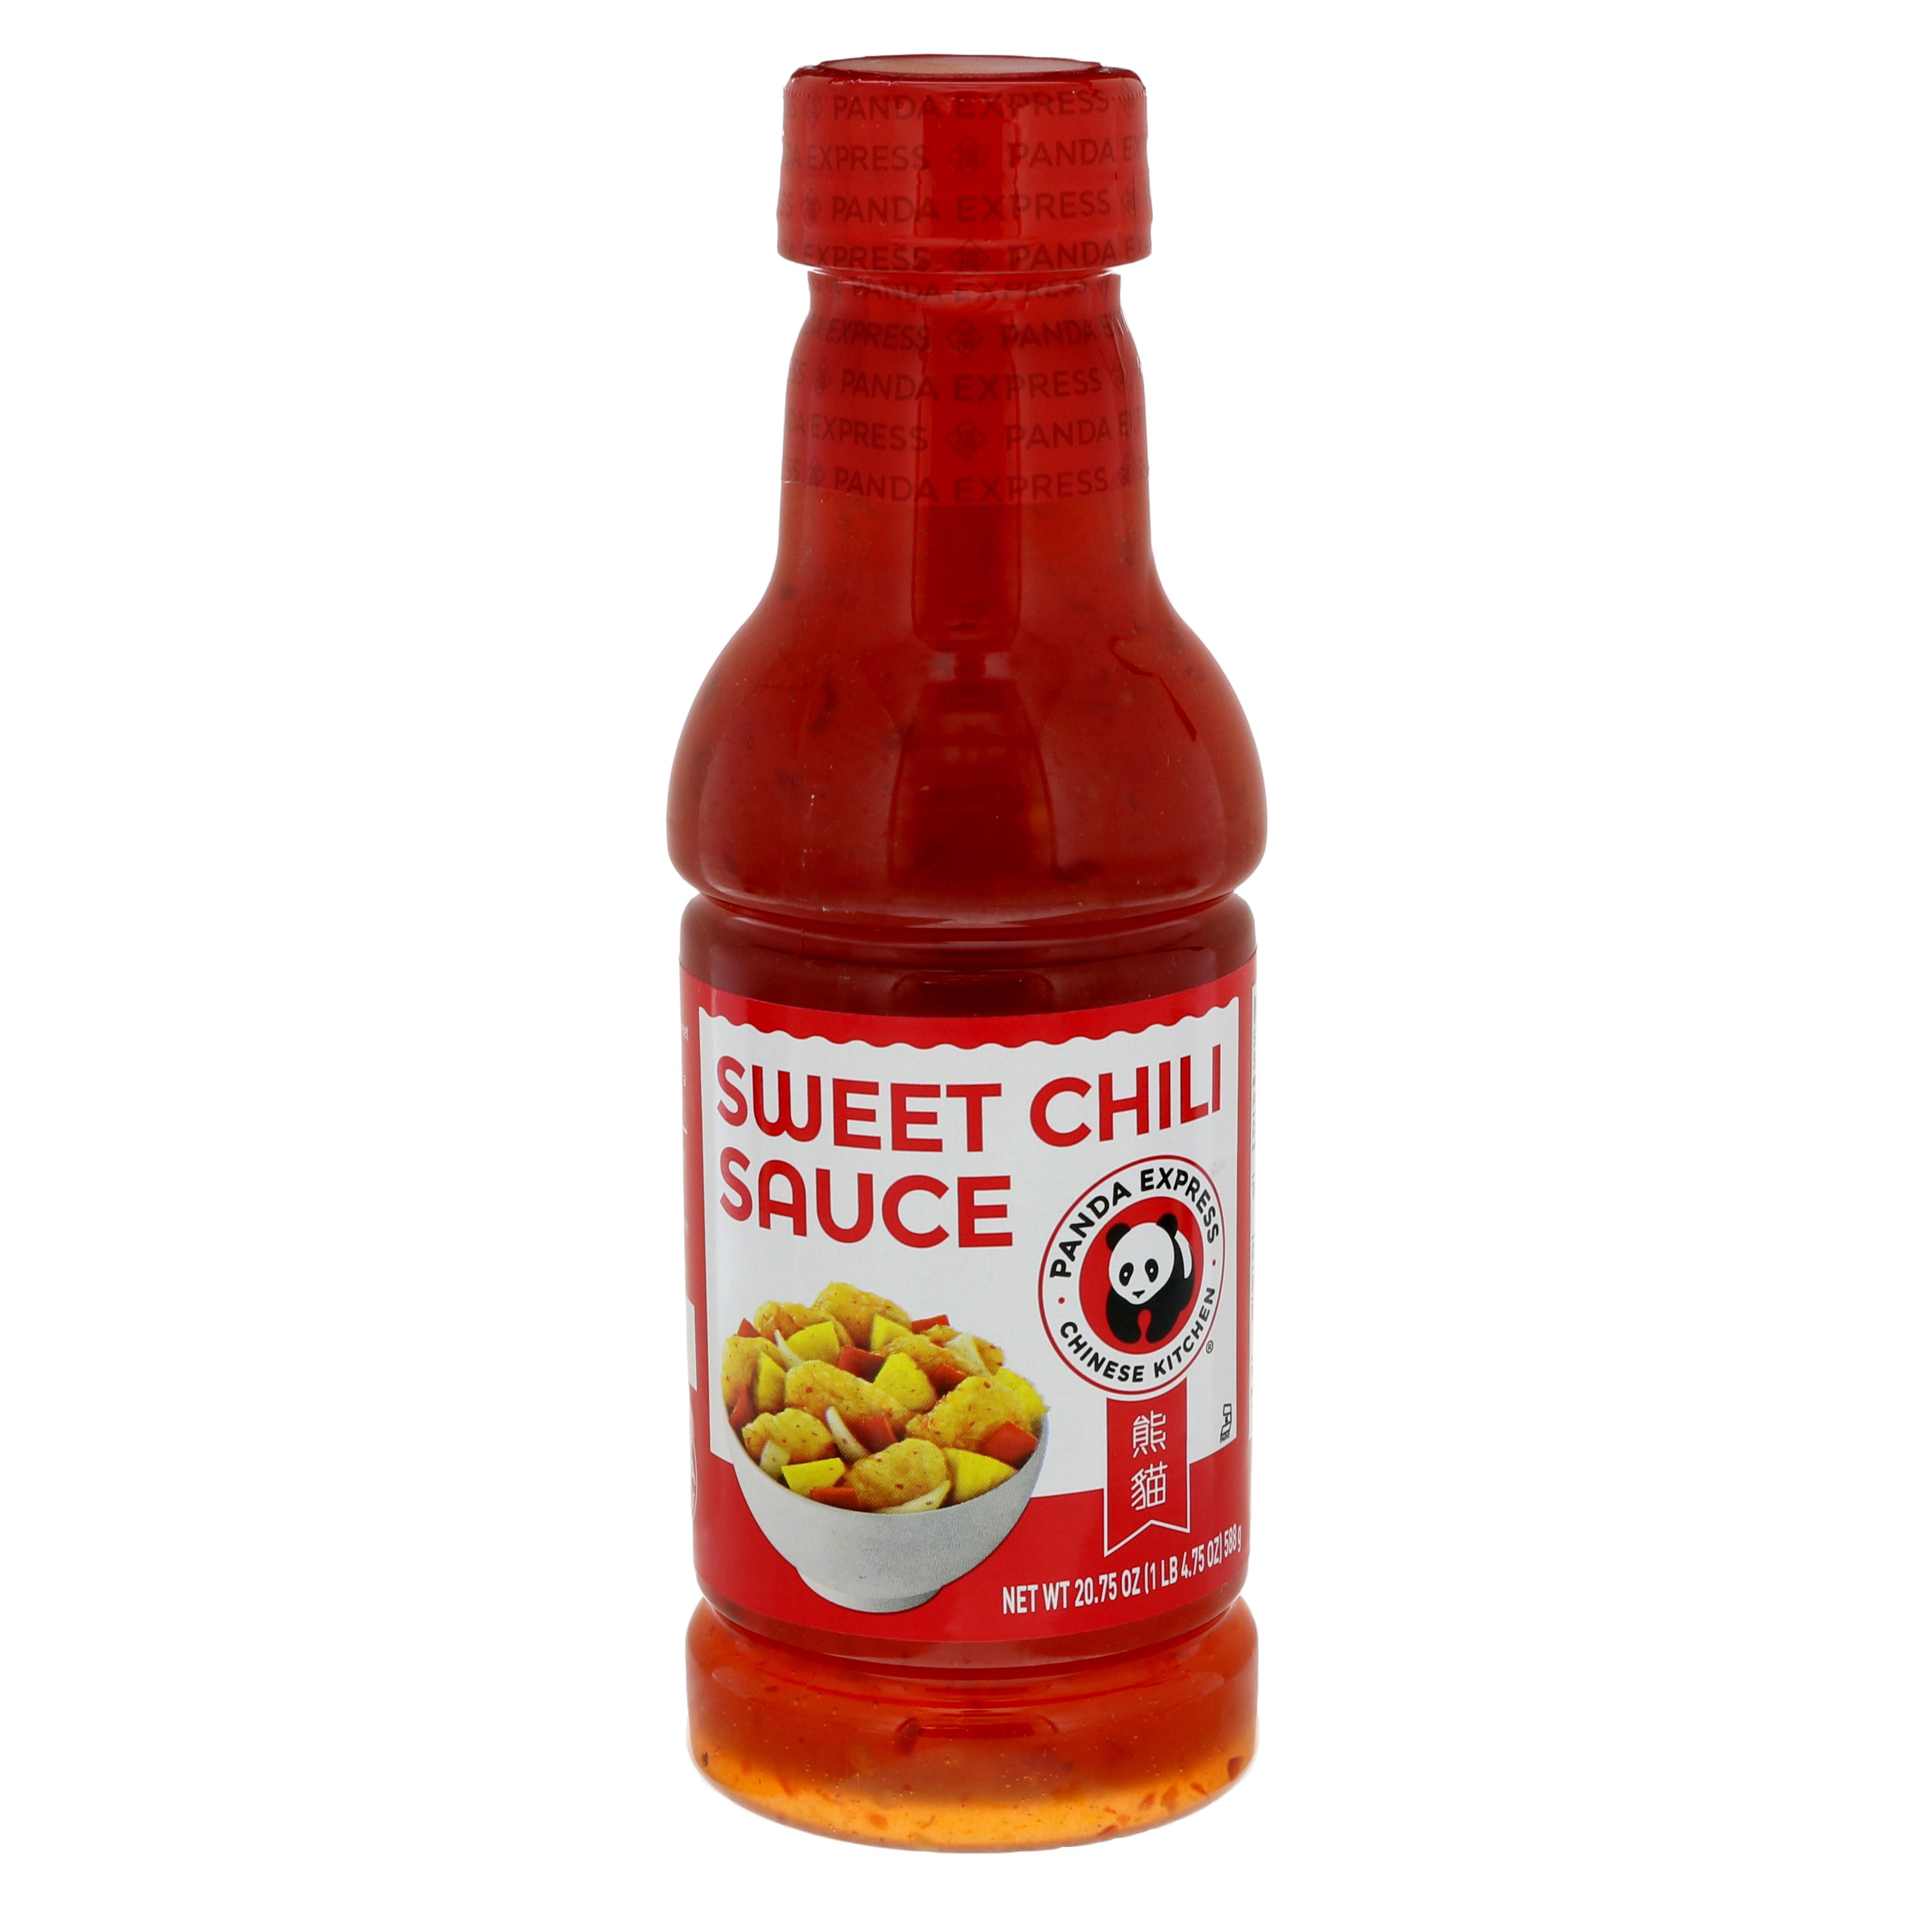 Panda Express Sweet Chili Sauce Shop Specialty Sauces At H E B